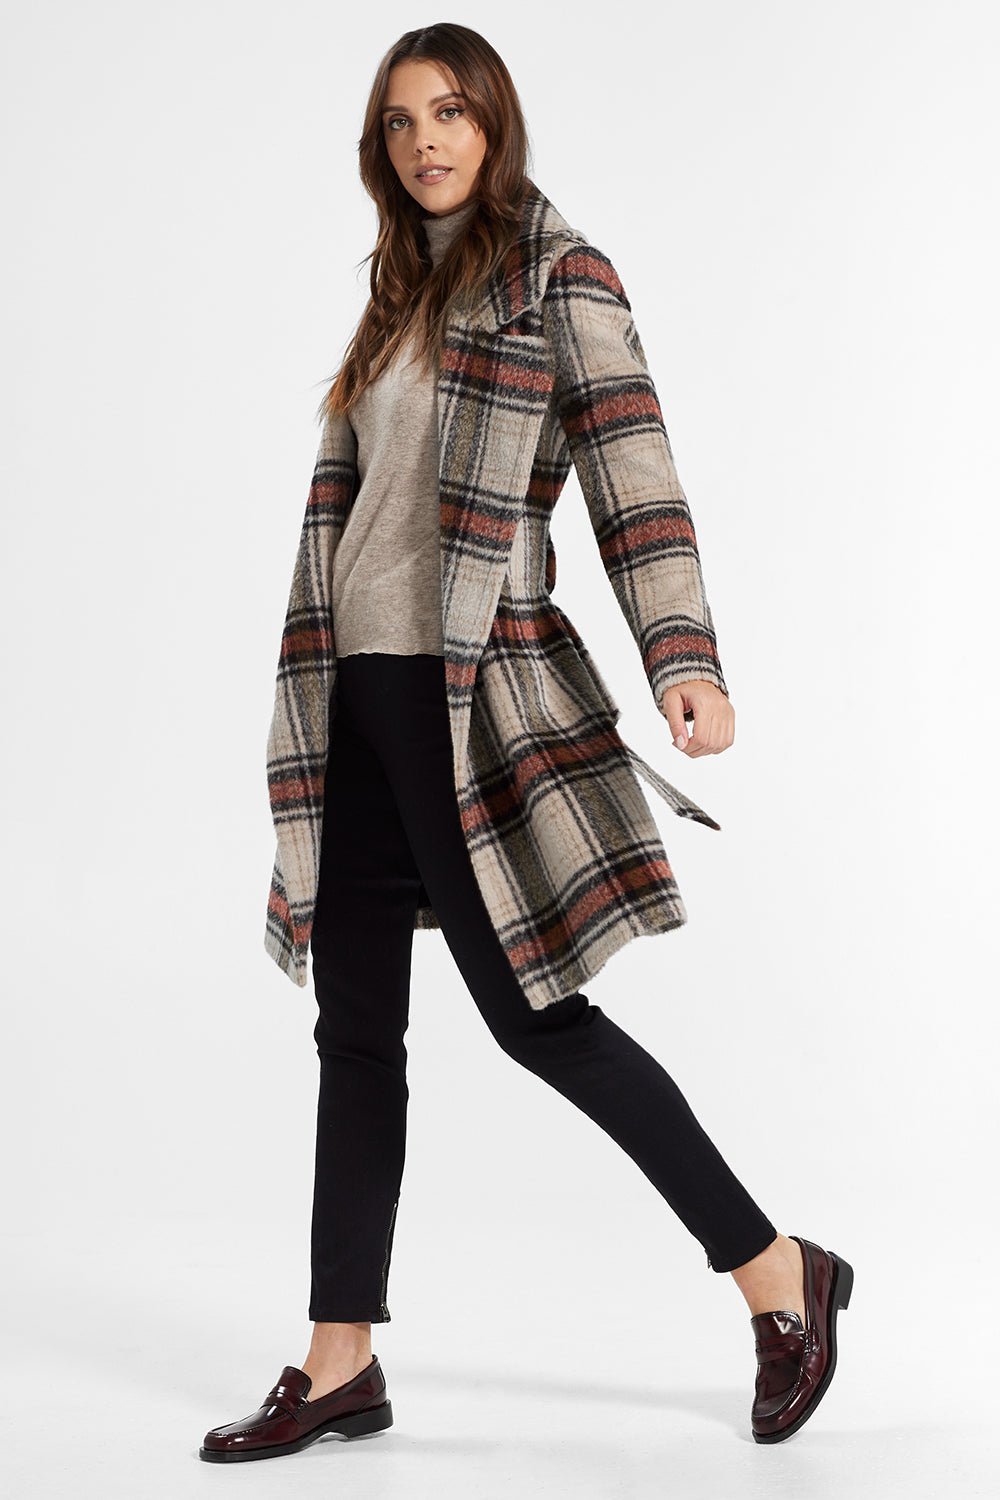 Sentaler Plaid Mid Length Notched Collar Wrap Coat featured in Suri Alpaca and available in Sand Plaid. Seen from side open